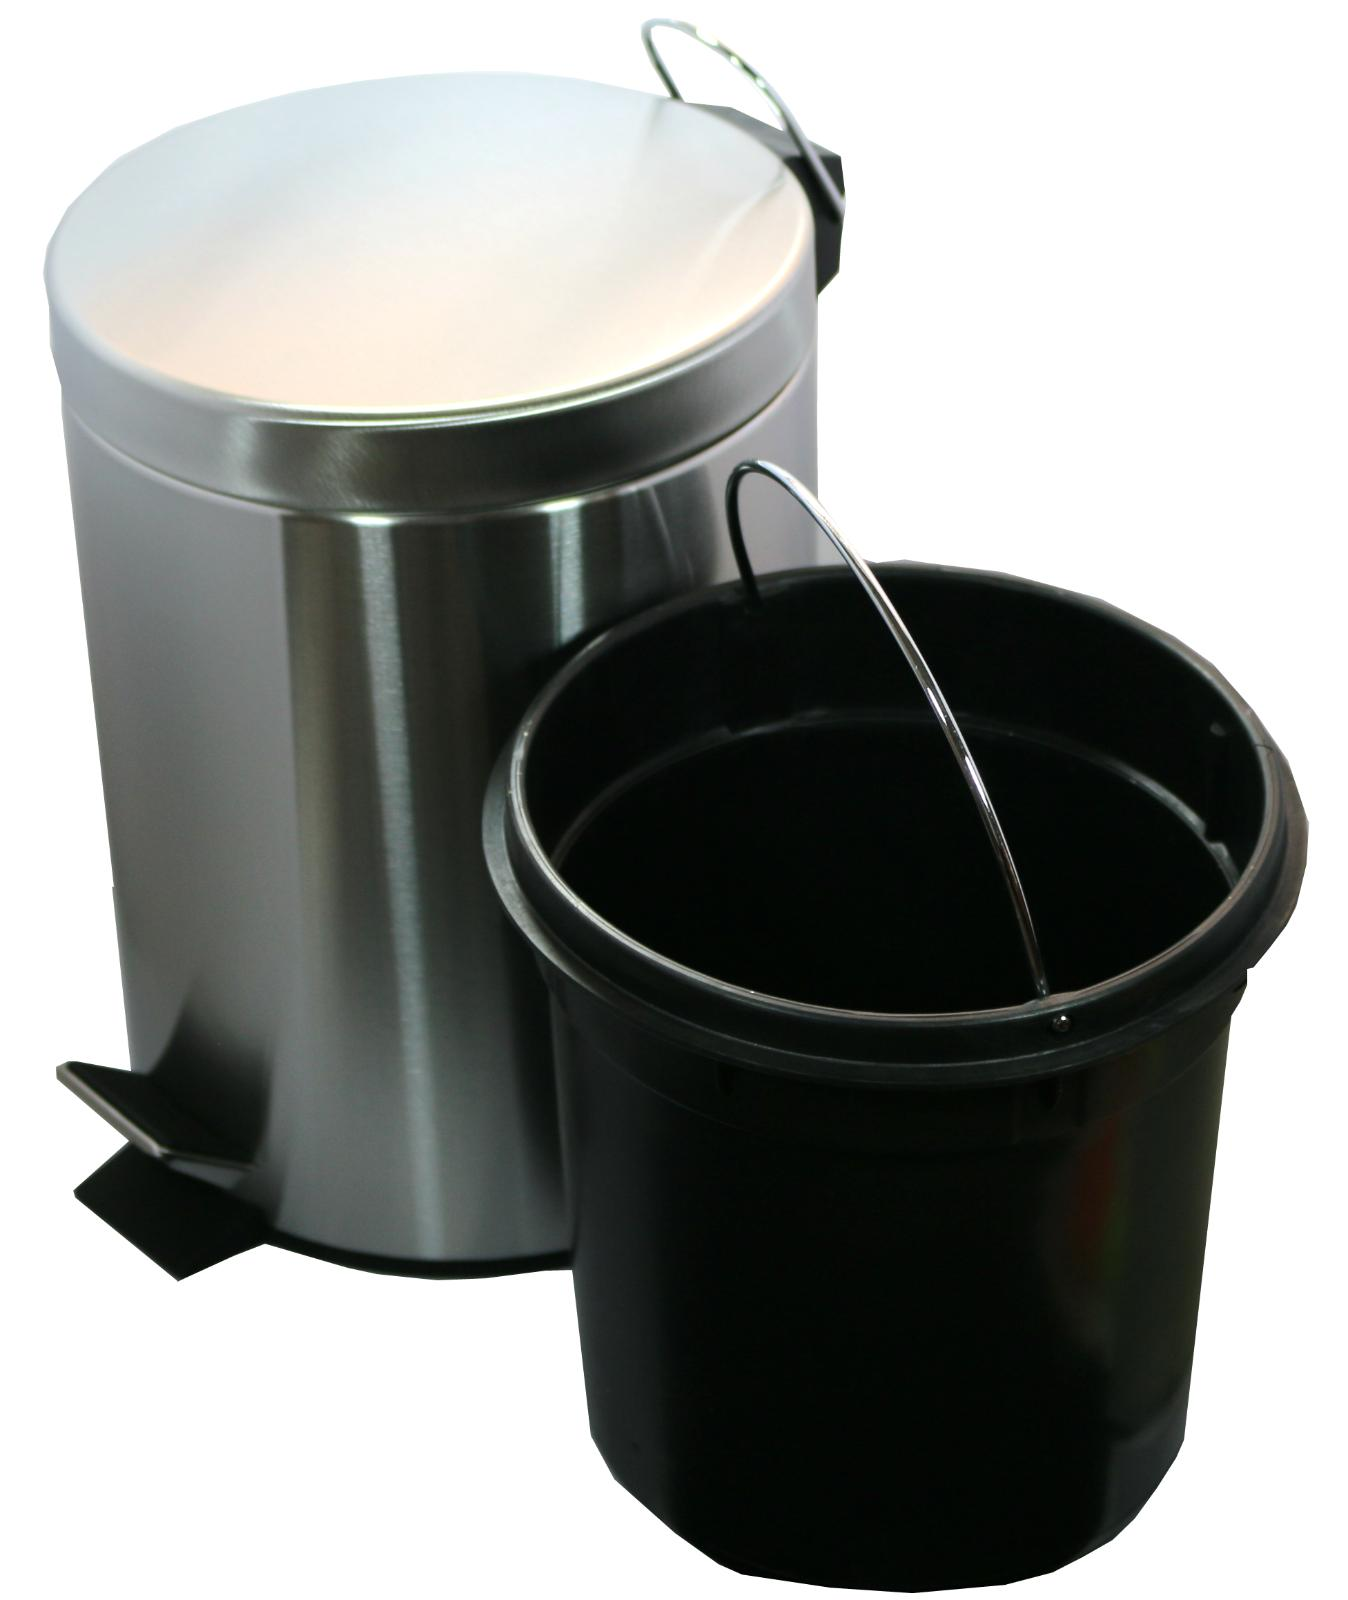 5 Liter/1.3 Round Stainless Steel Step Trash Can